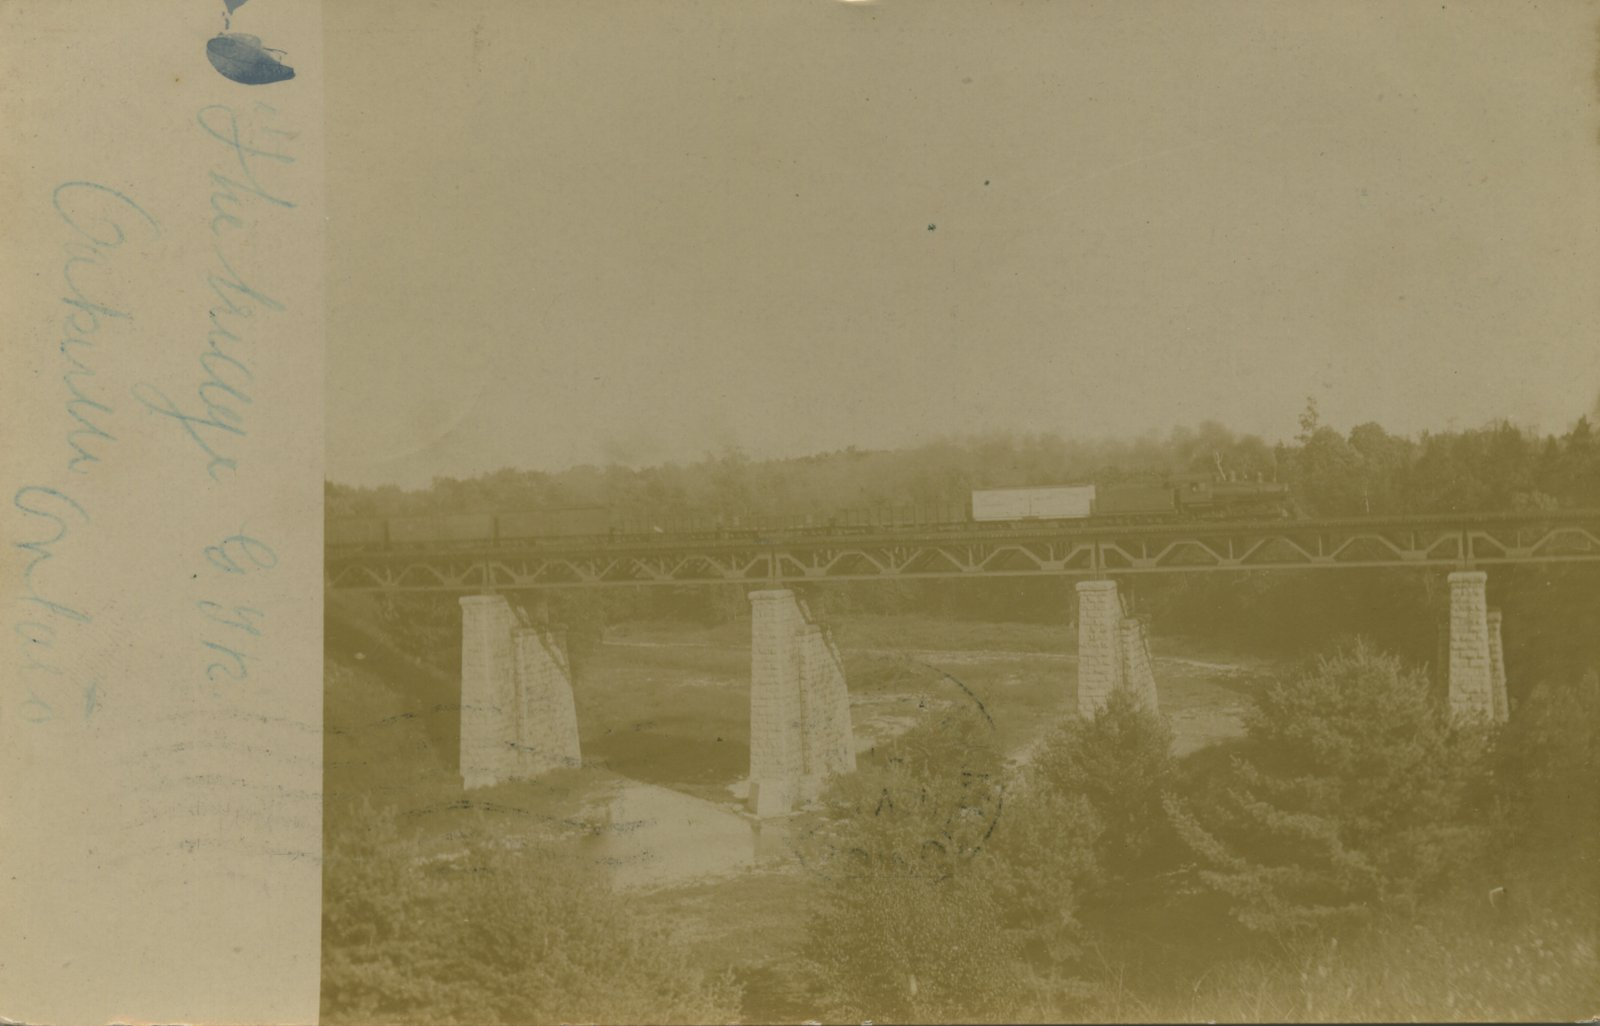 The bridge, Grand Trunk Railway, Oakville, Ont.